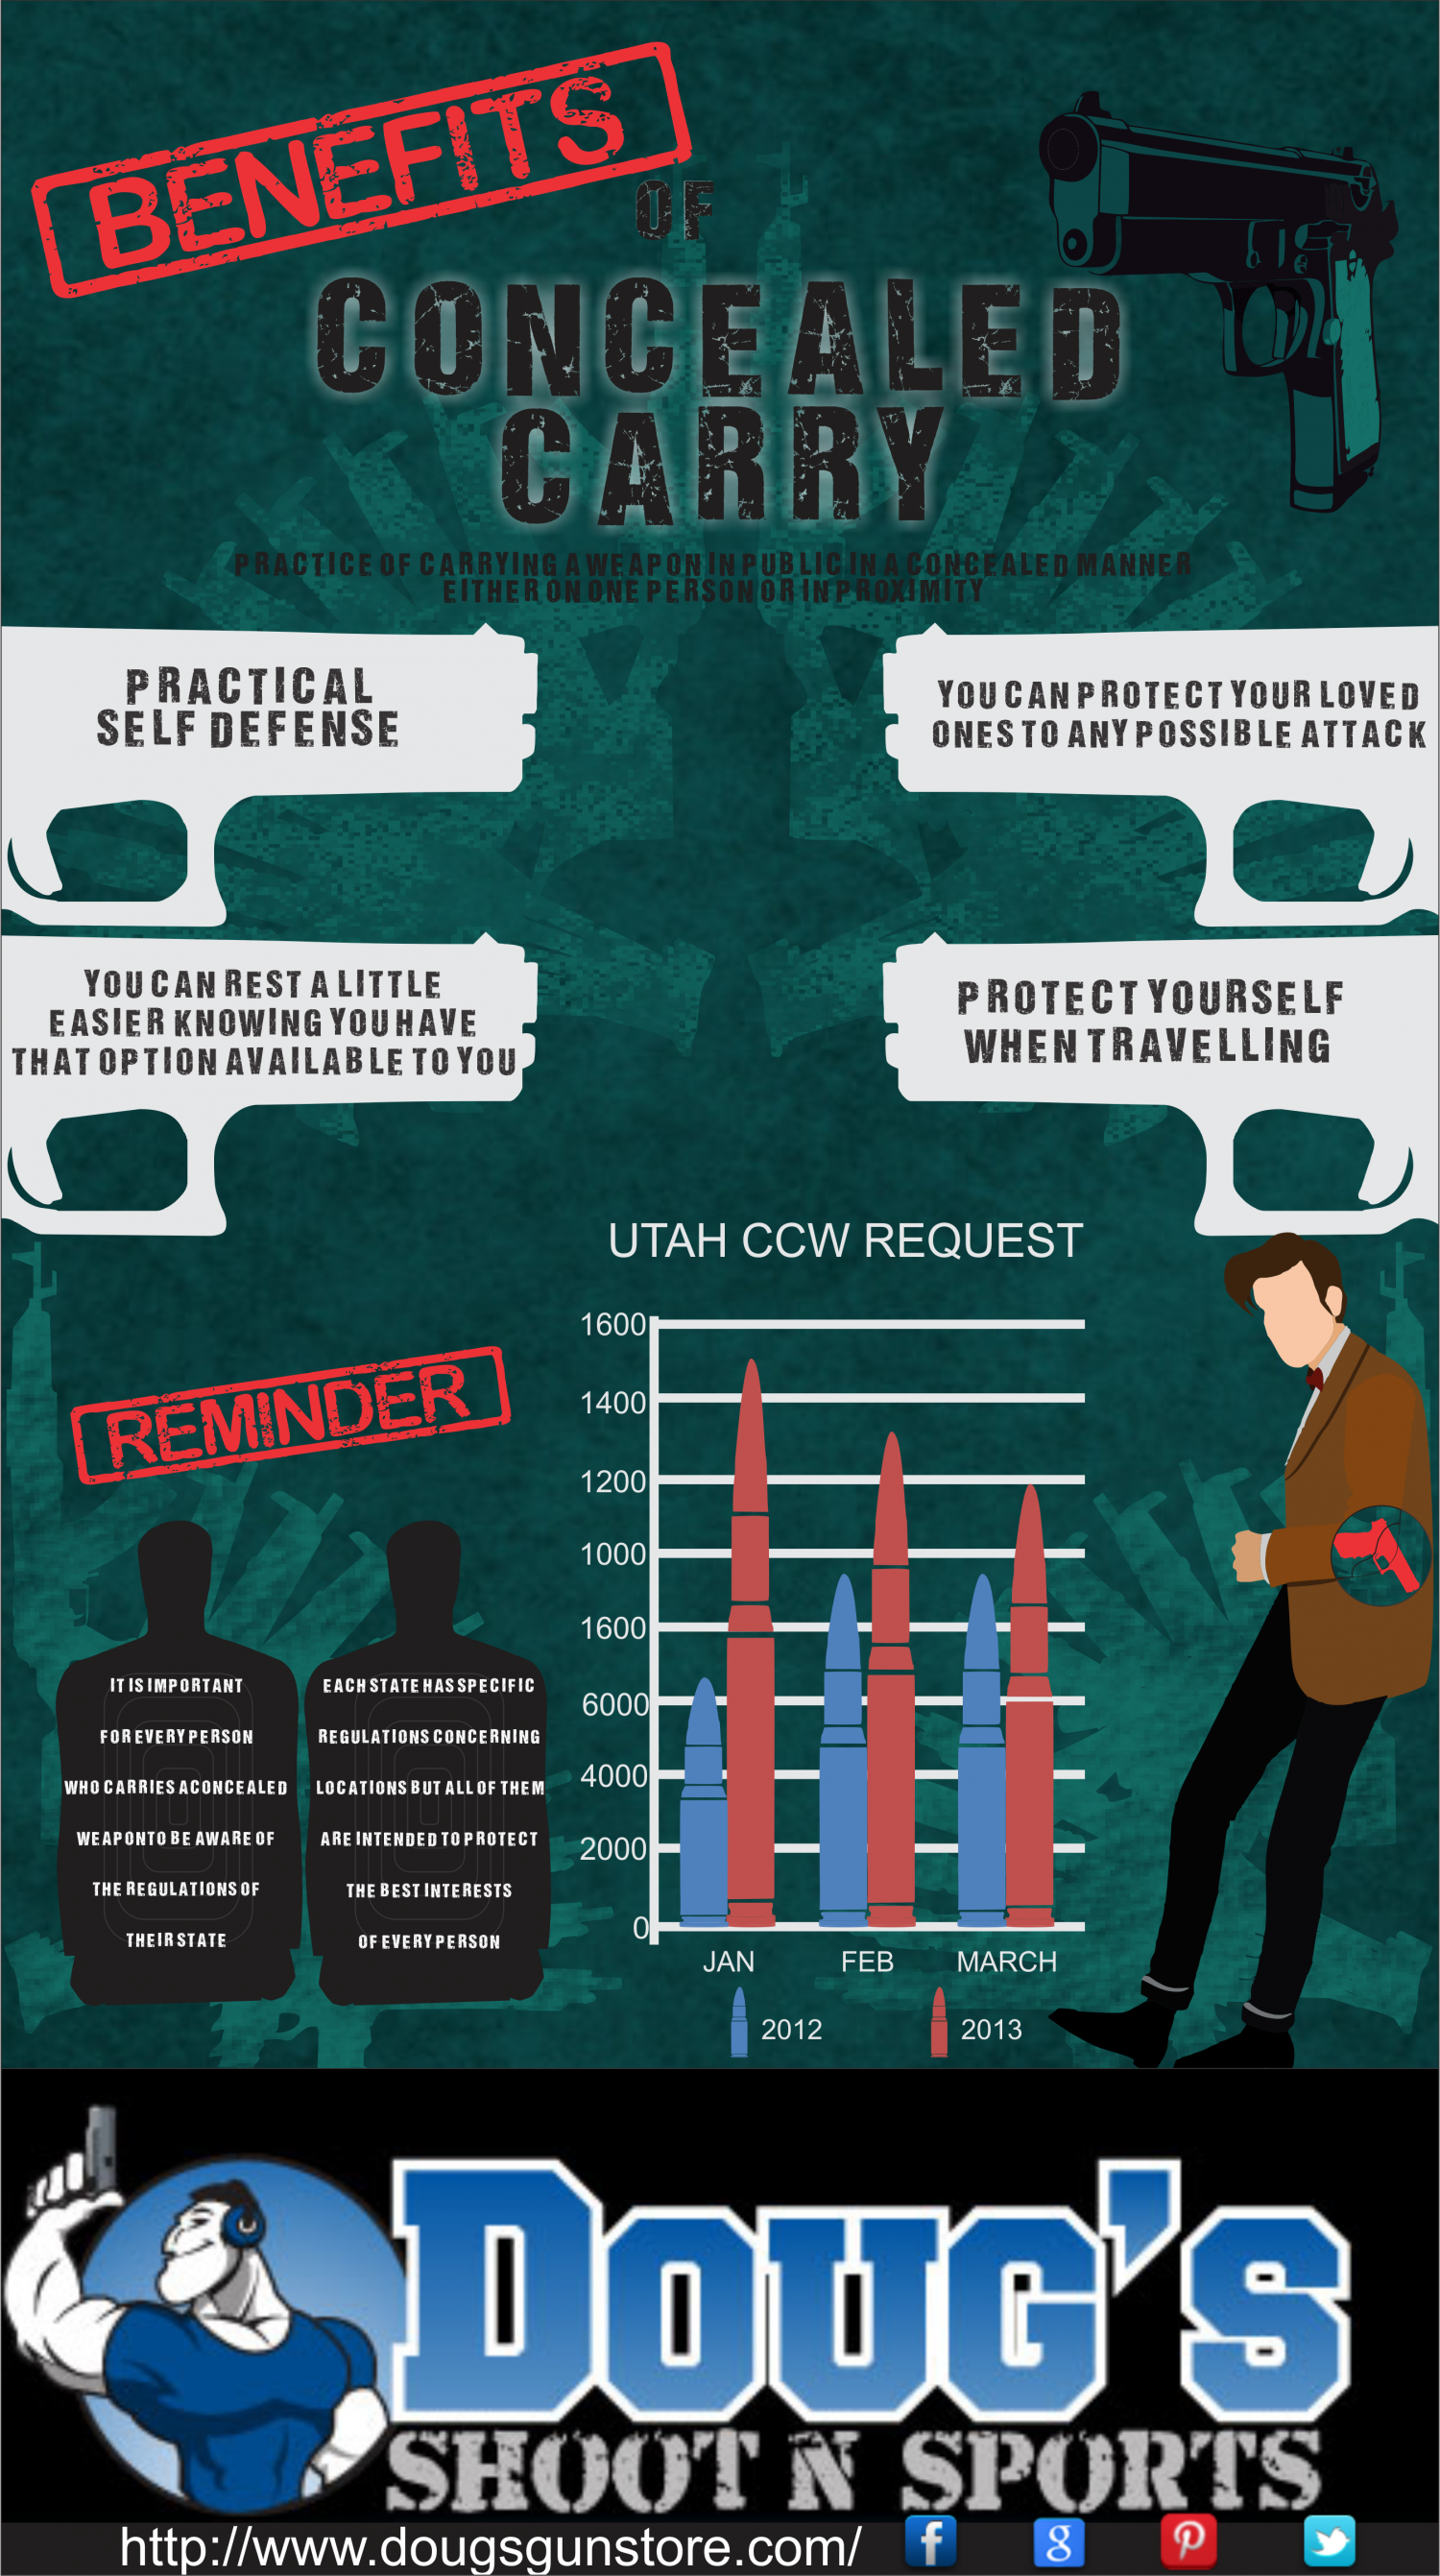 Benefits Of Concealed Carry Infographic